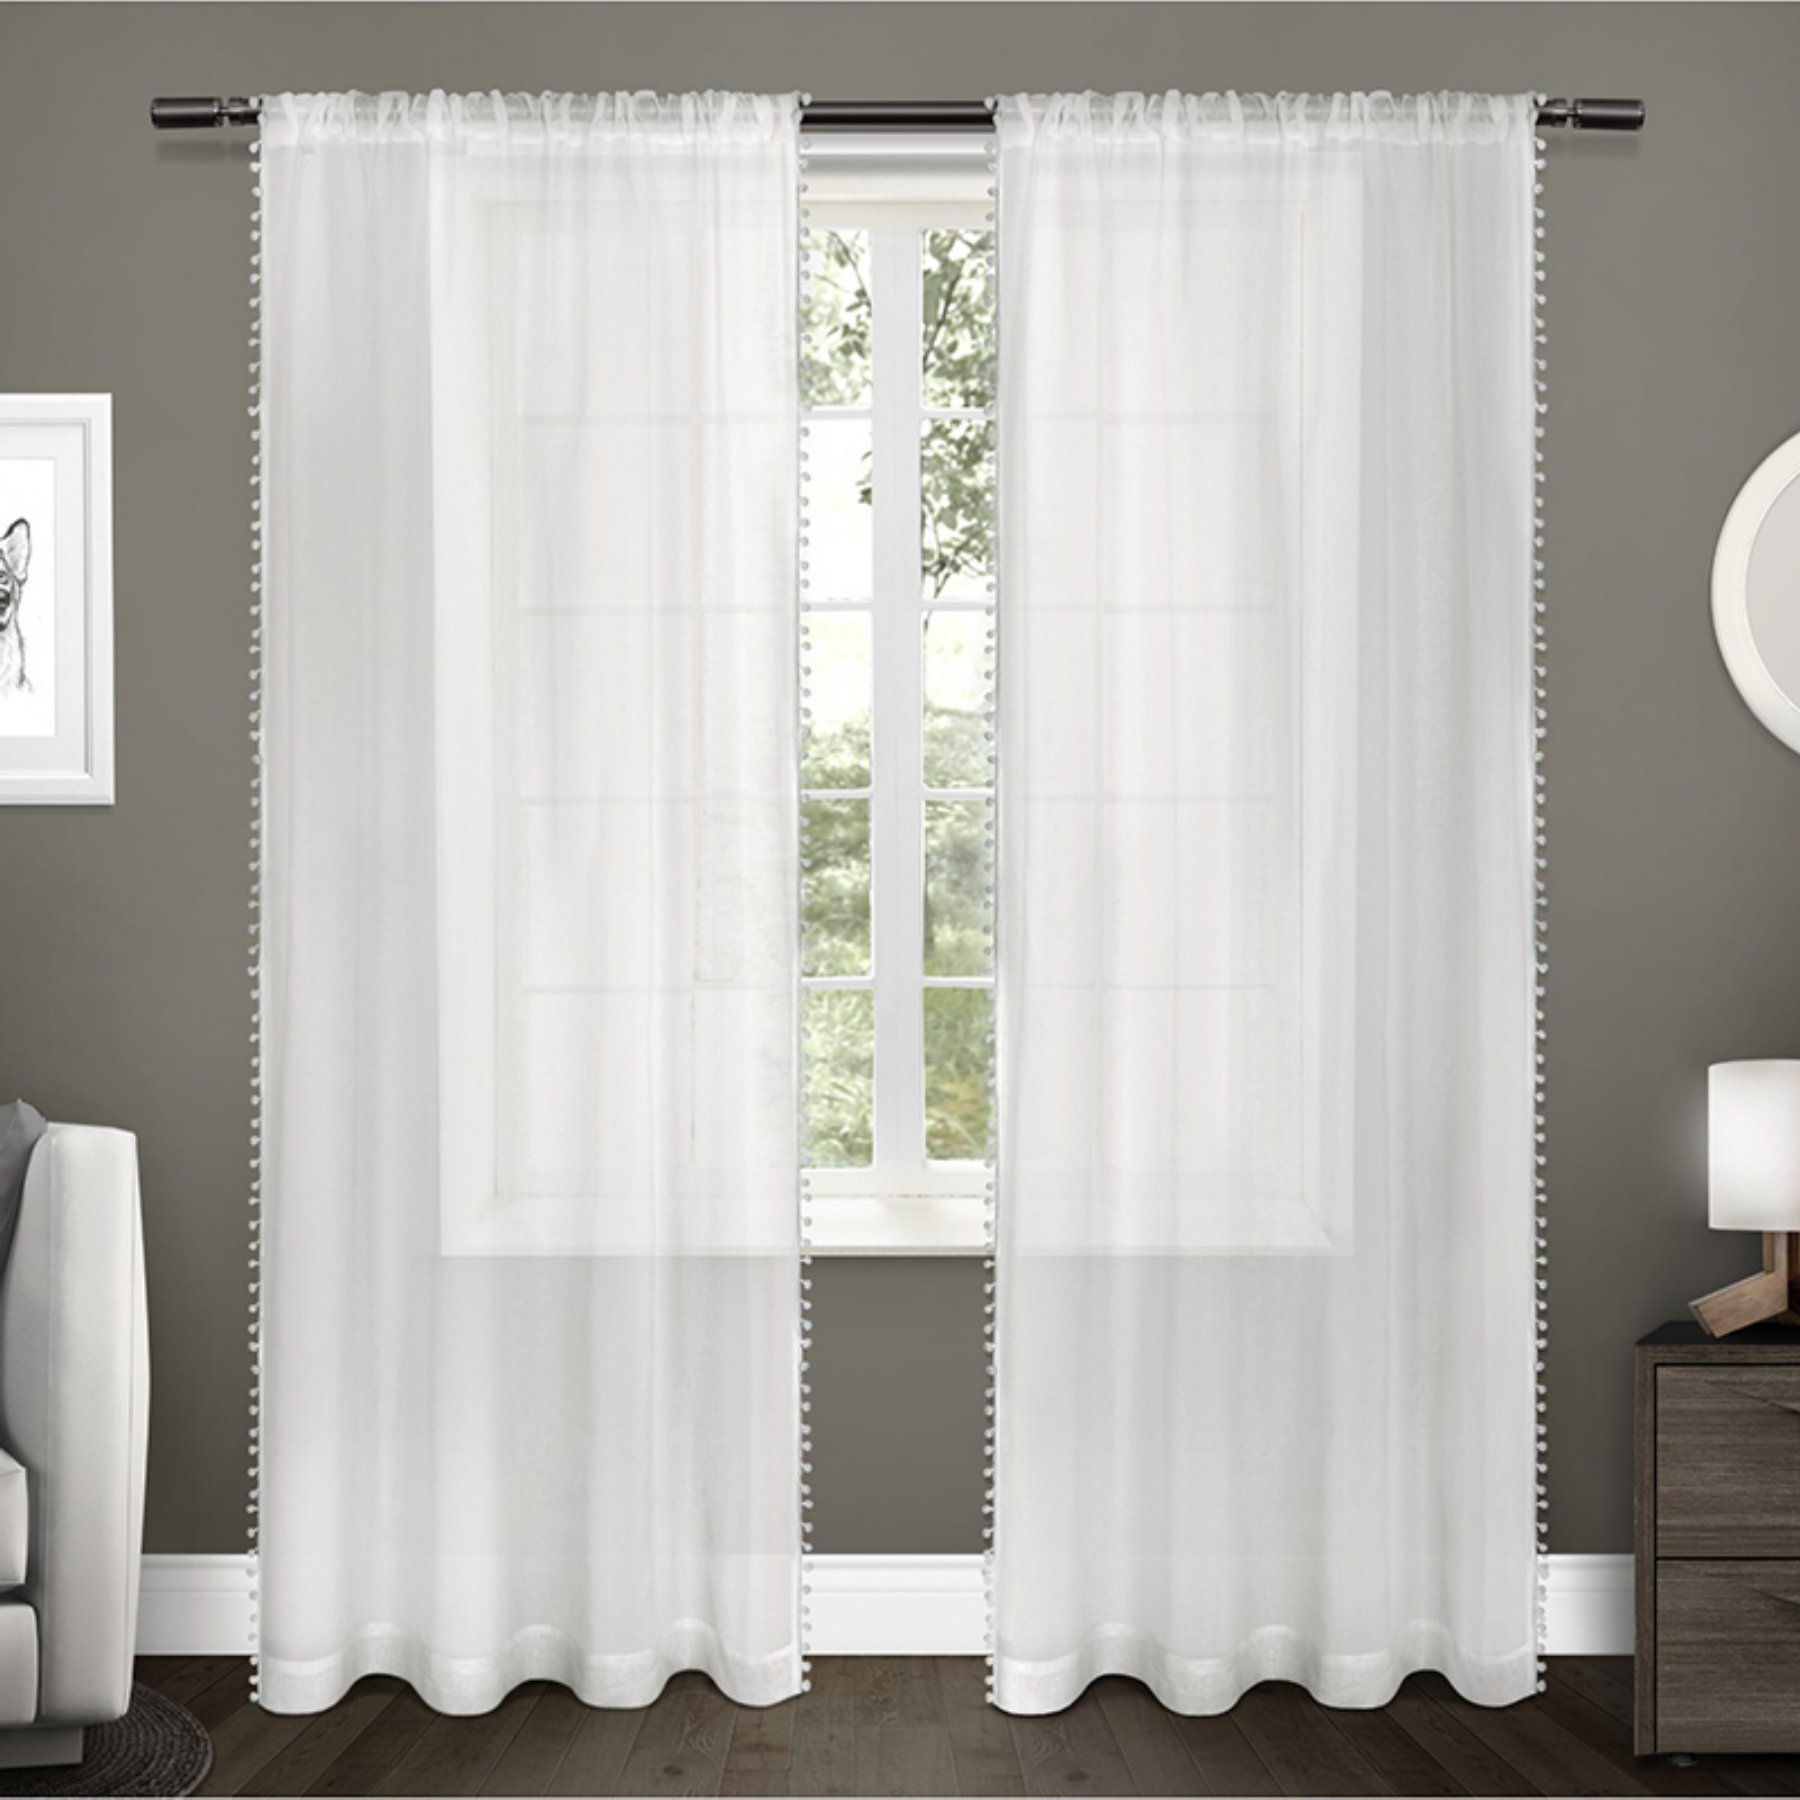 Overseas Leaf Swirl Embroidered Curtain Panel Pairs Throughout Most Recent Exclusive Home Pom Pom Sheer Applique Curtain Panel Pair (View 7 of 21)